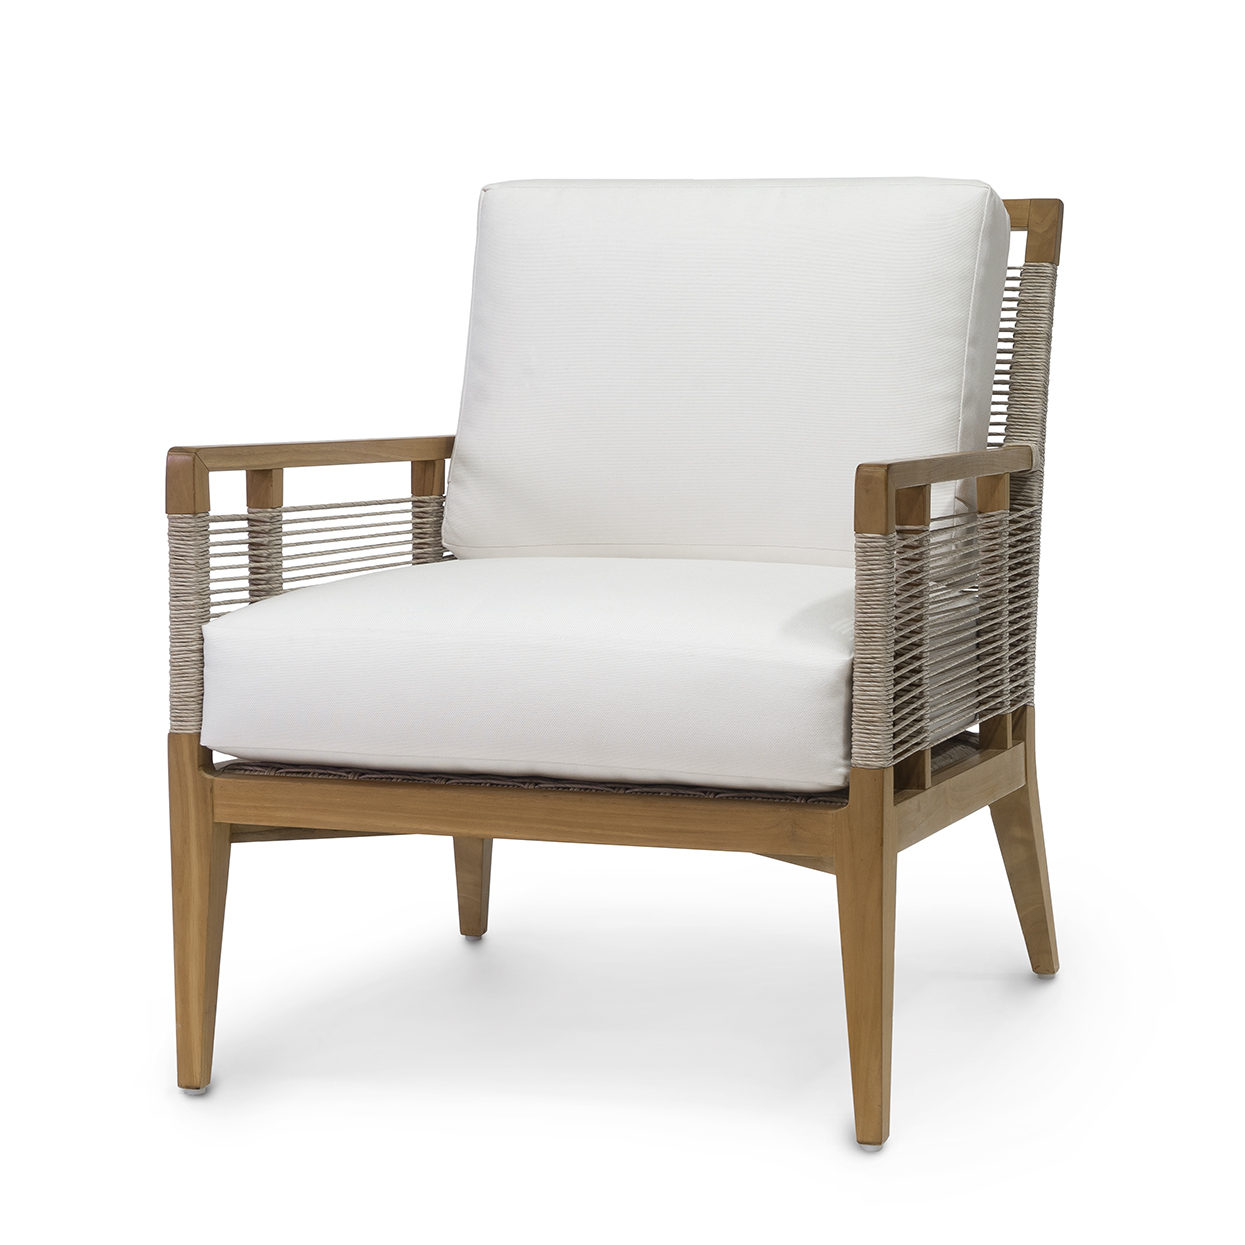 Awesome Amalfi Outdoor Lounge Chair Soul House Interiors Ncnpc Chair Design For Home Ncnpcorg